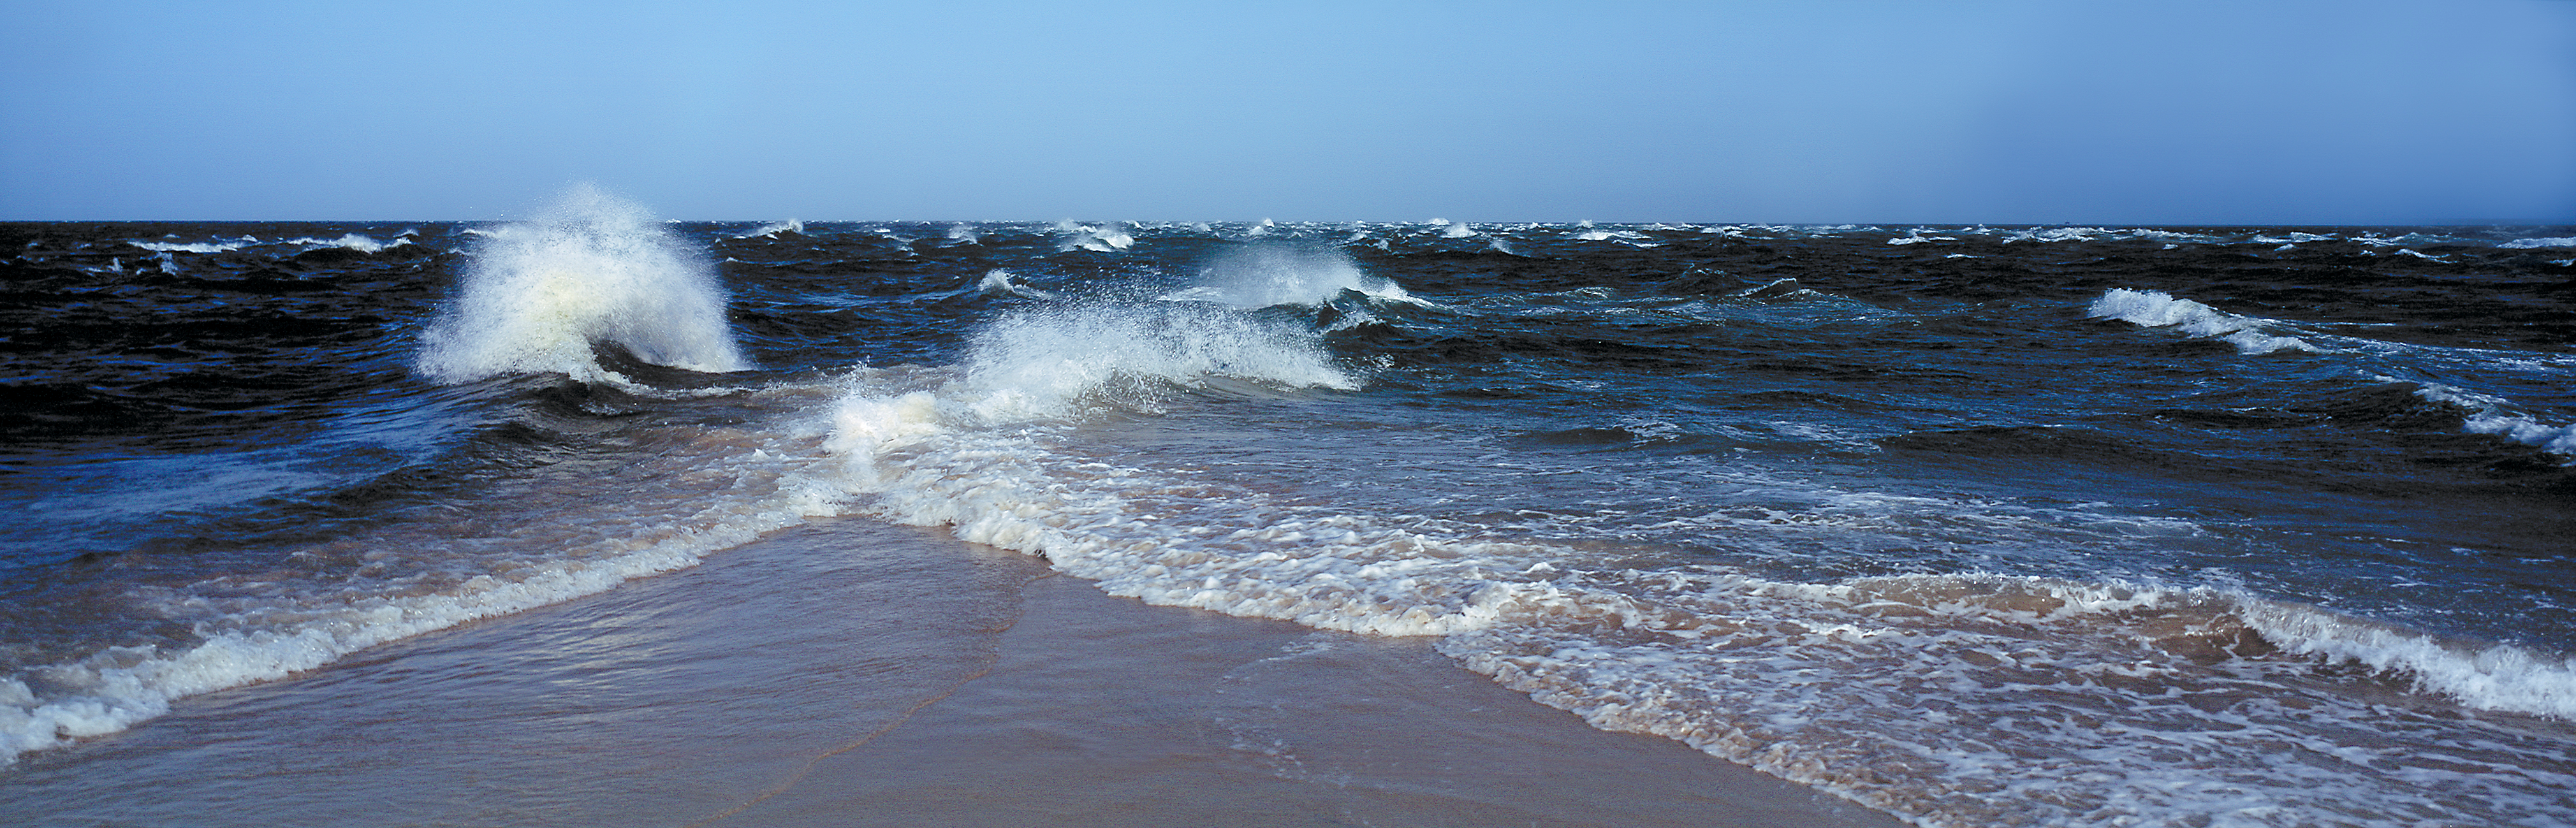 Baltic and North Seas meet at Skagen, Denmark. : pics